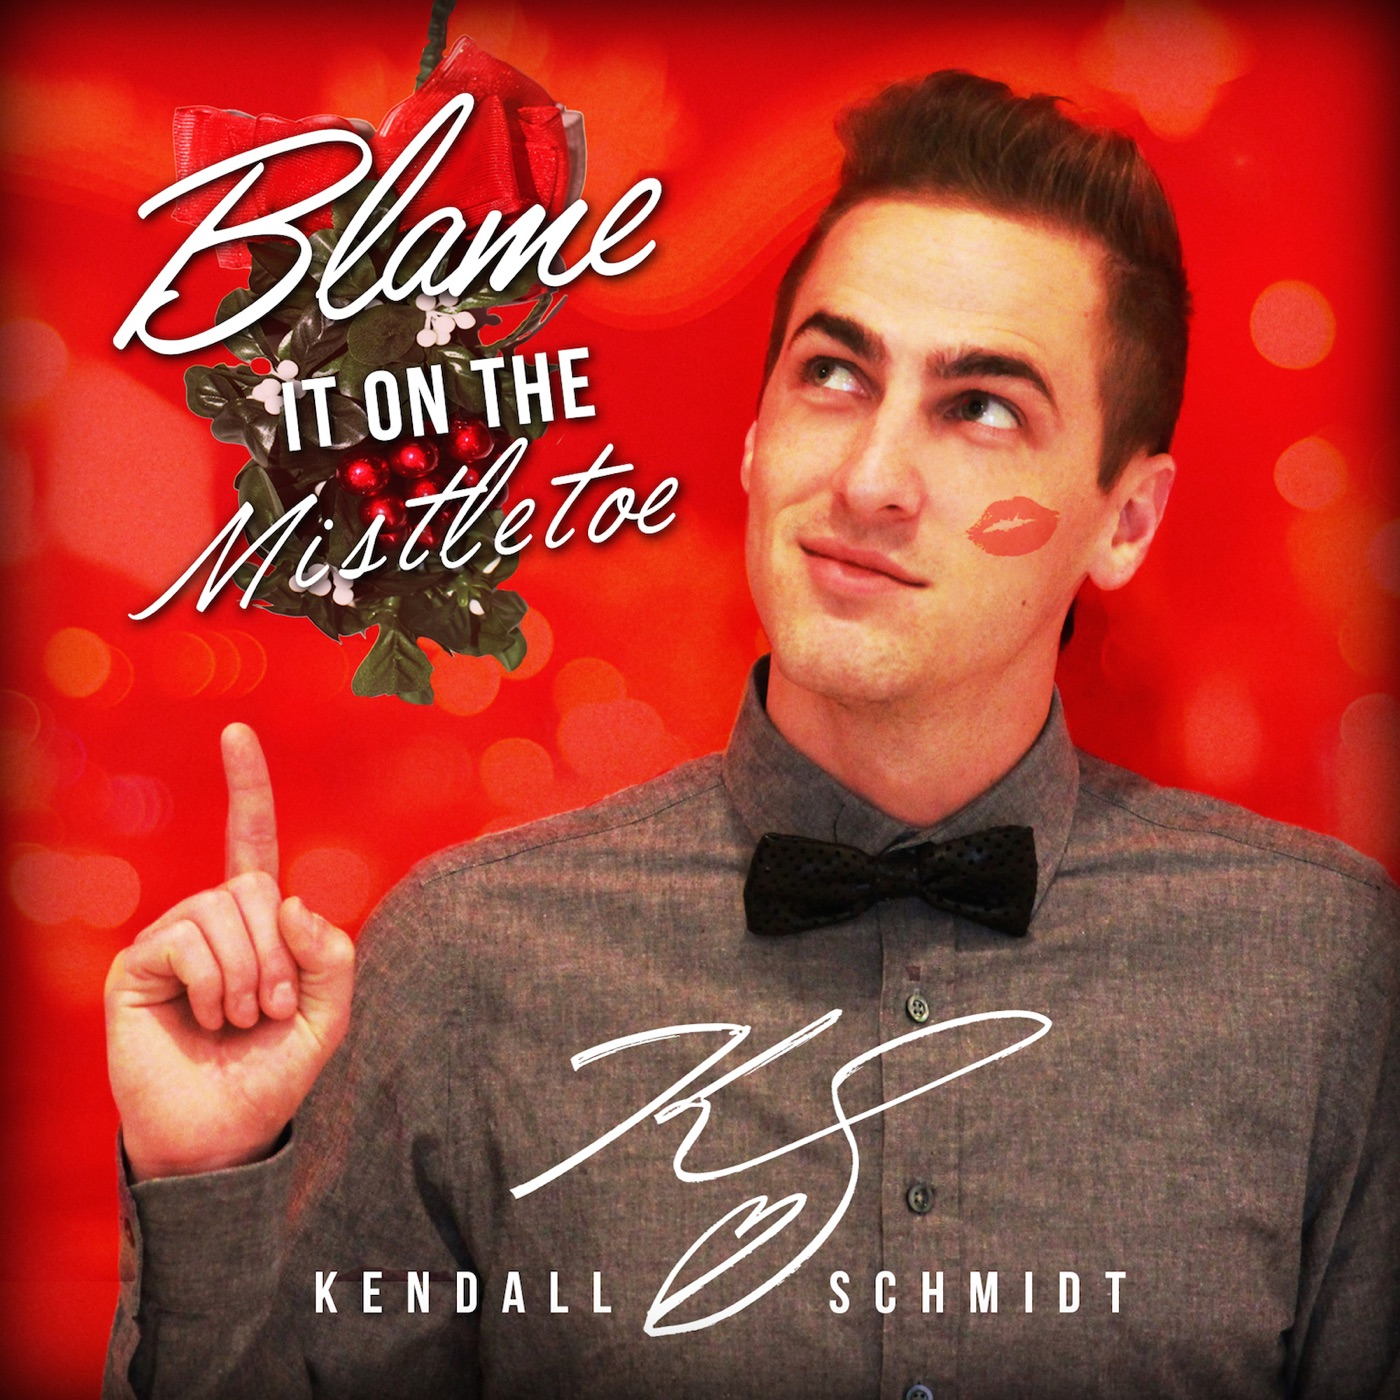 Kendall Schmidt - Blame It on the Mistletoe - Single